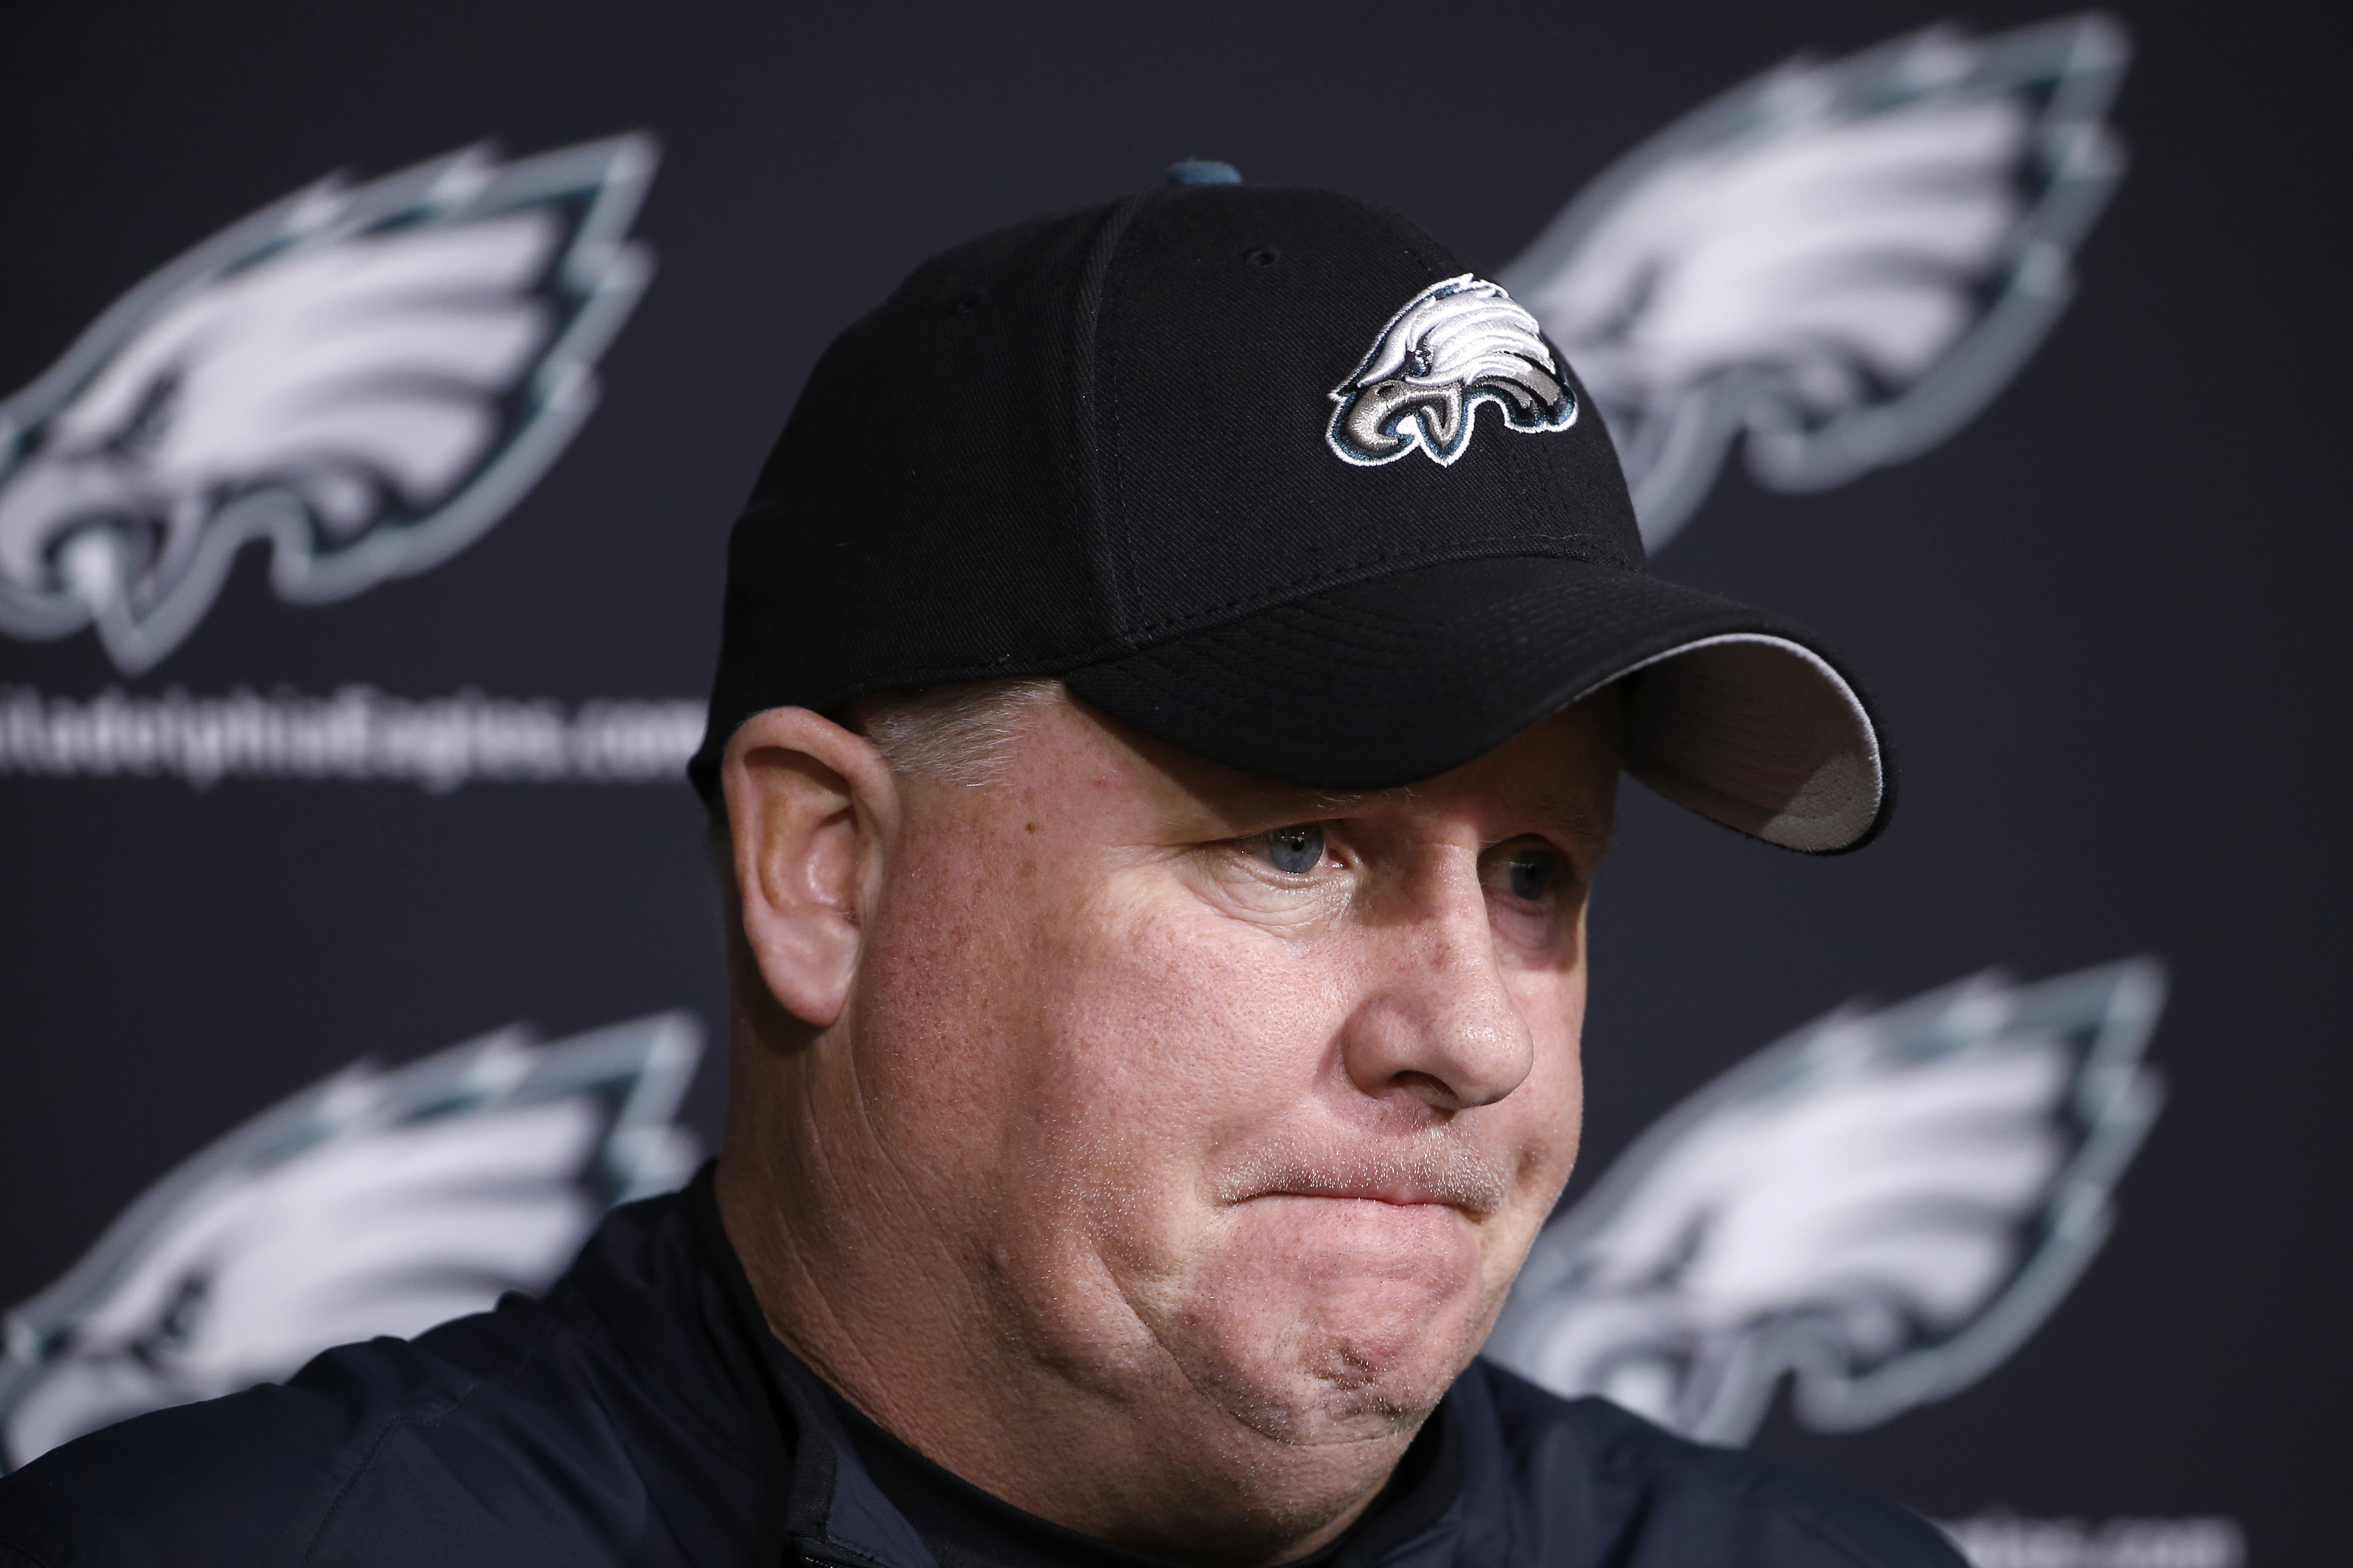 Philadelphia Eagles head coach Chip Kelly listens to a question during a news conference at the NFL football team's practice facility, Monday, Dec. 28, 2015, in Philadelphia. (AP Photo/Matt Rourke)